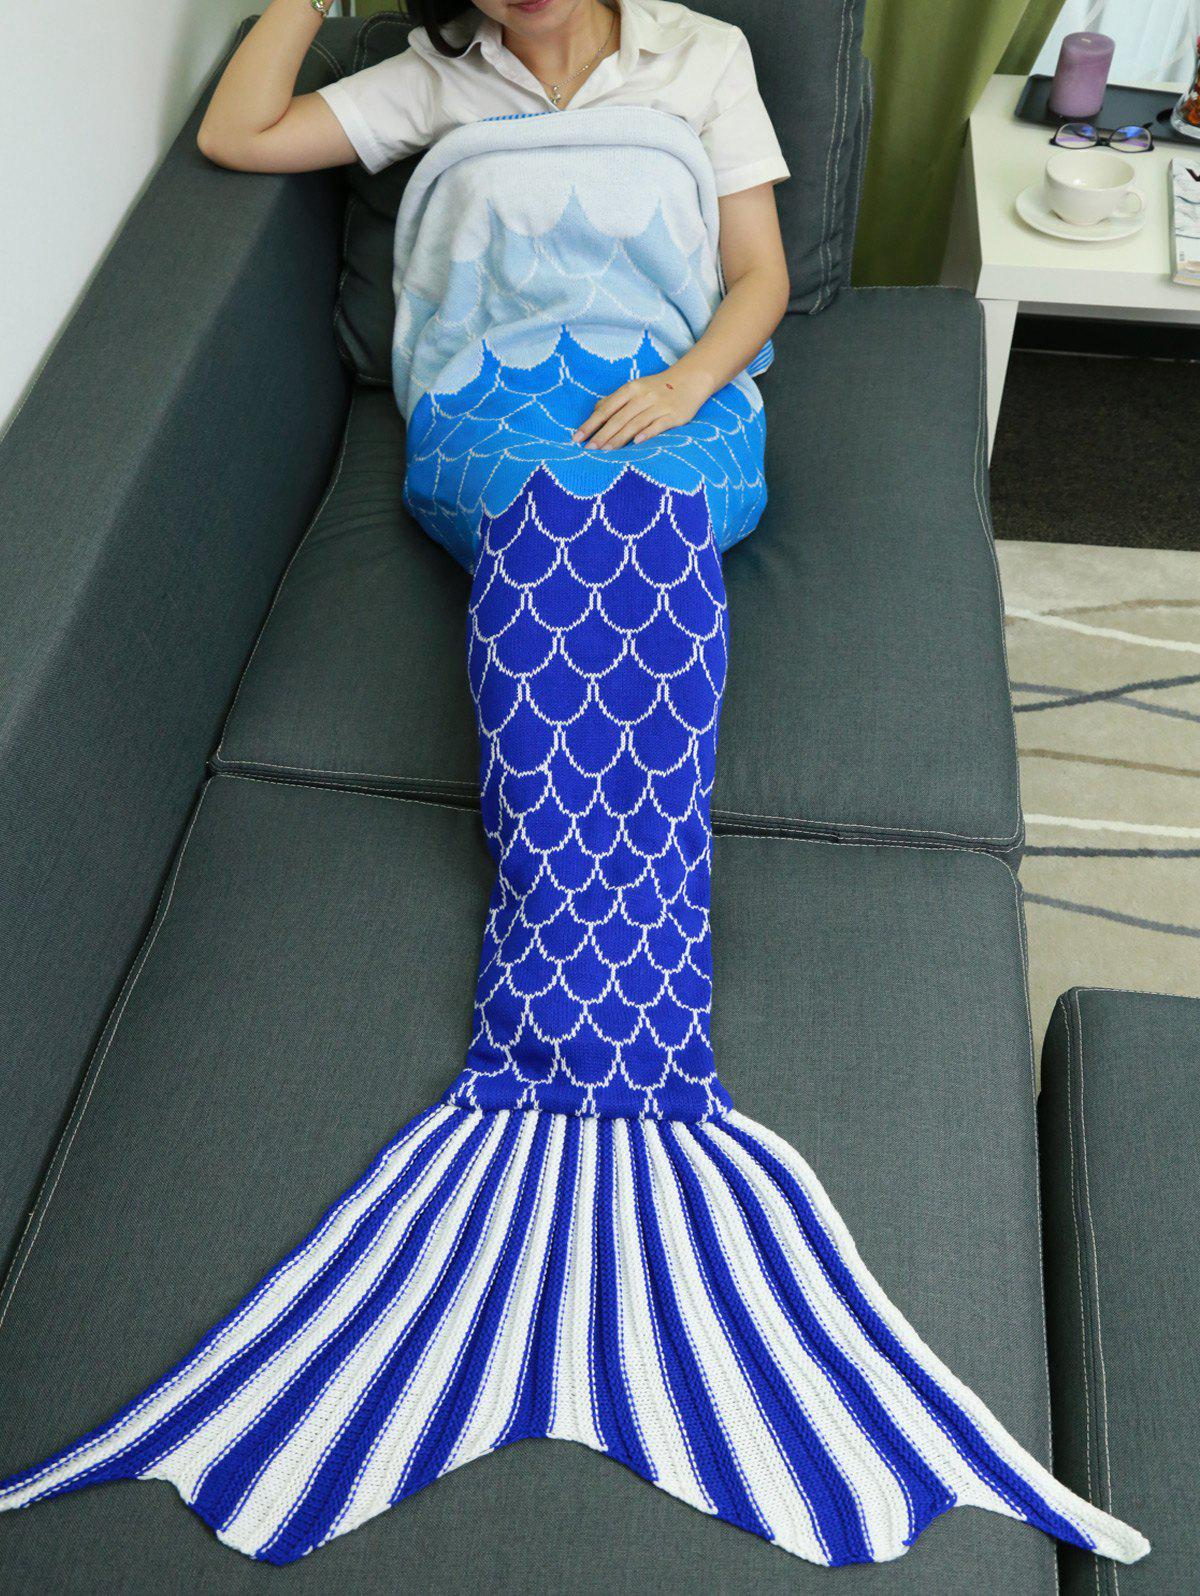 Shops Ombre Color Knitting Fish Scales Design Mermaid Tail Style Blanket